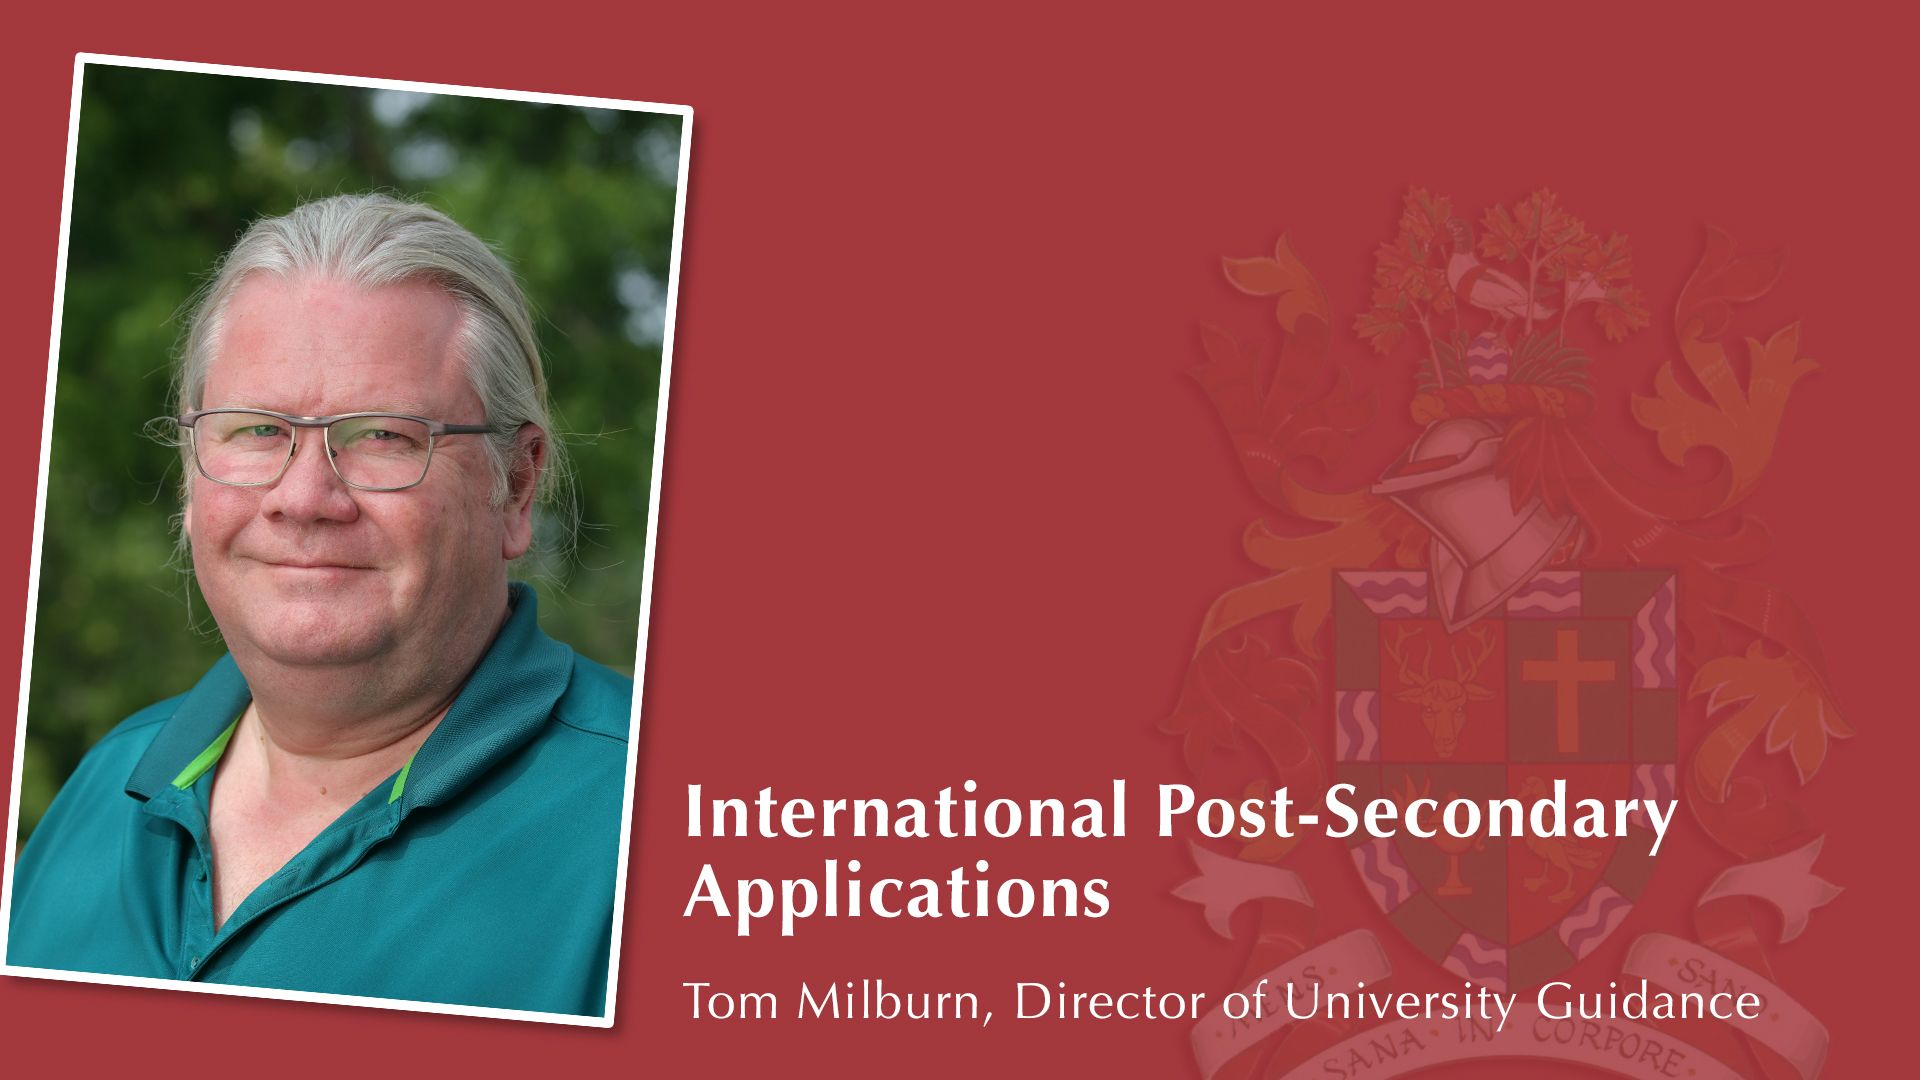 International Post-Secondary Applications